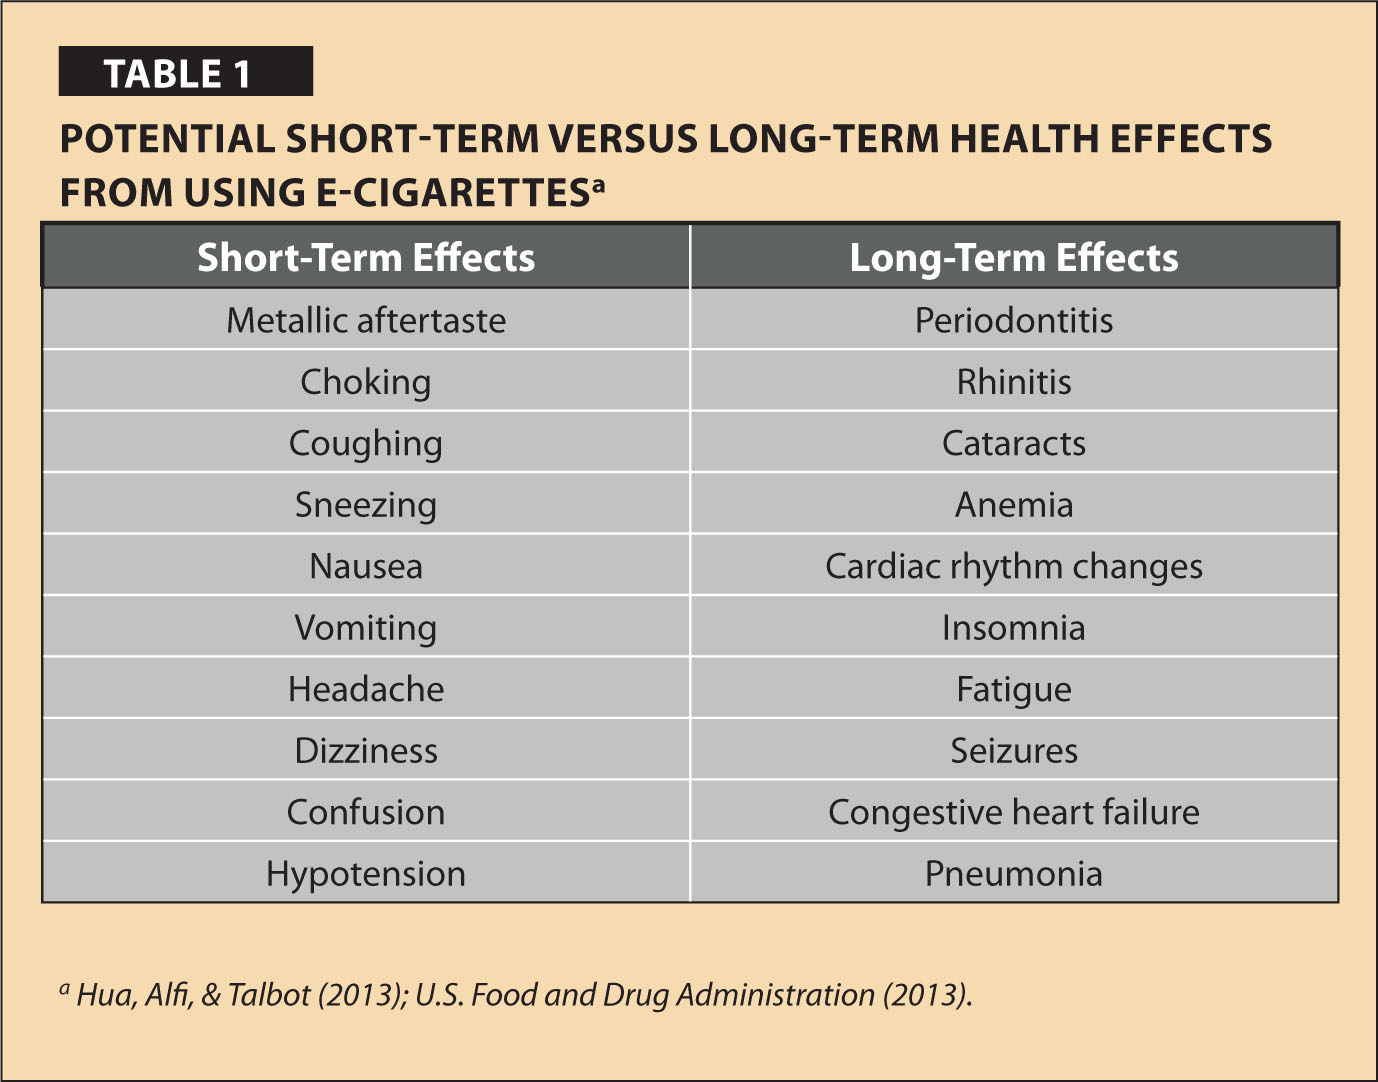 Potential Short-term Versus Long-term Health Effects from Using E-Cigarettesa